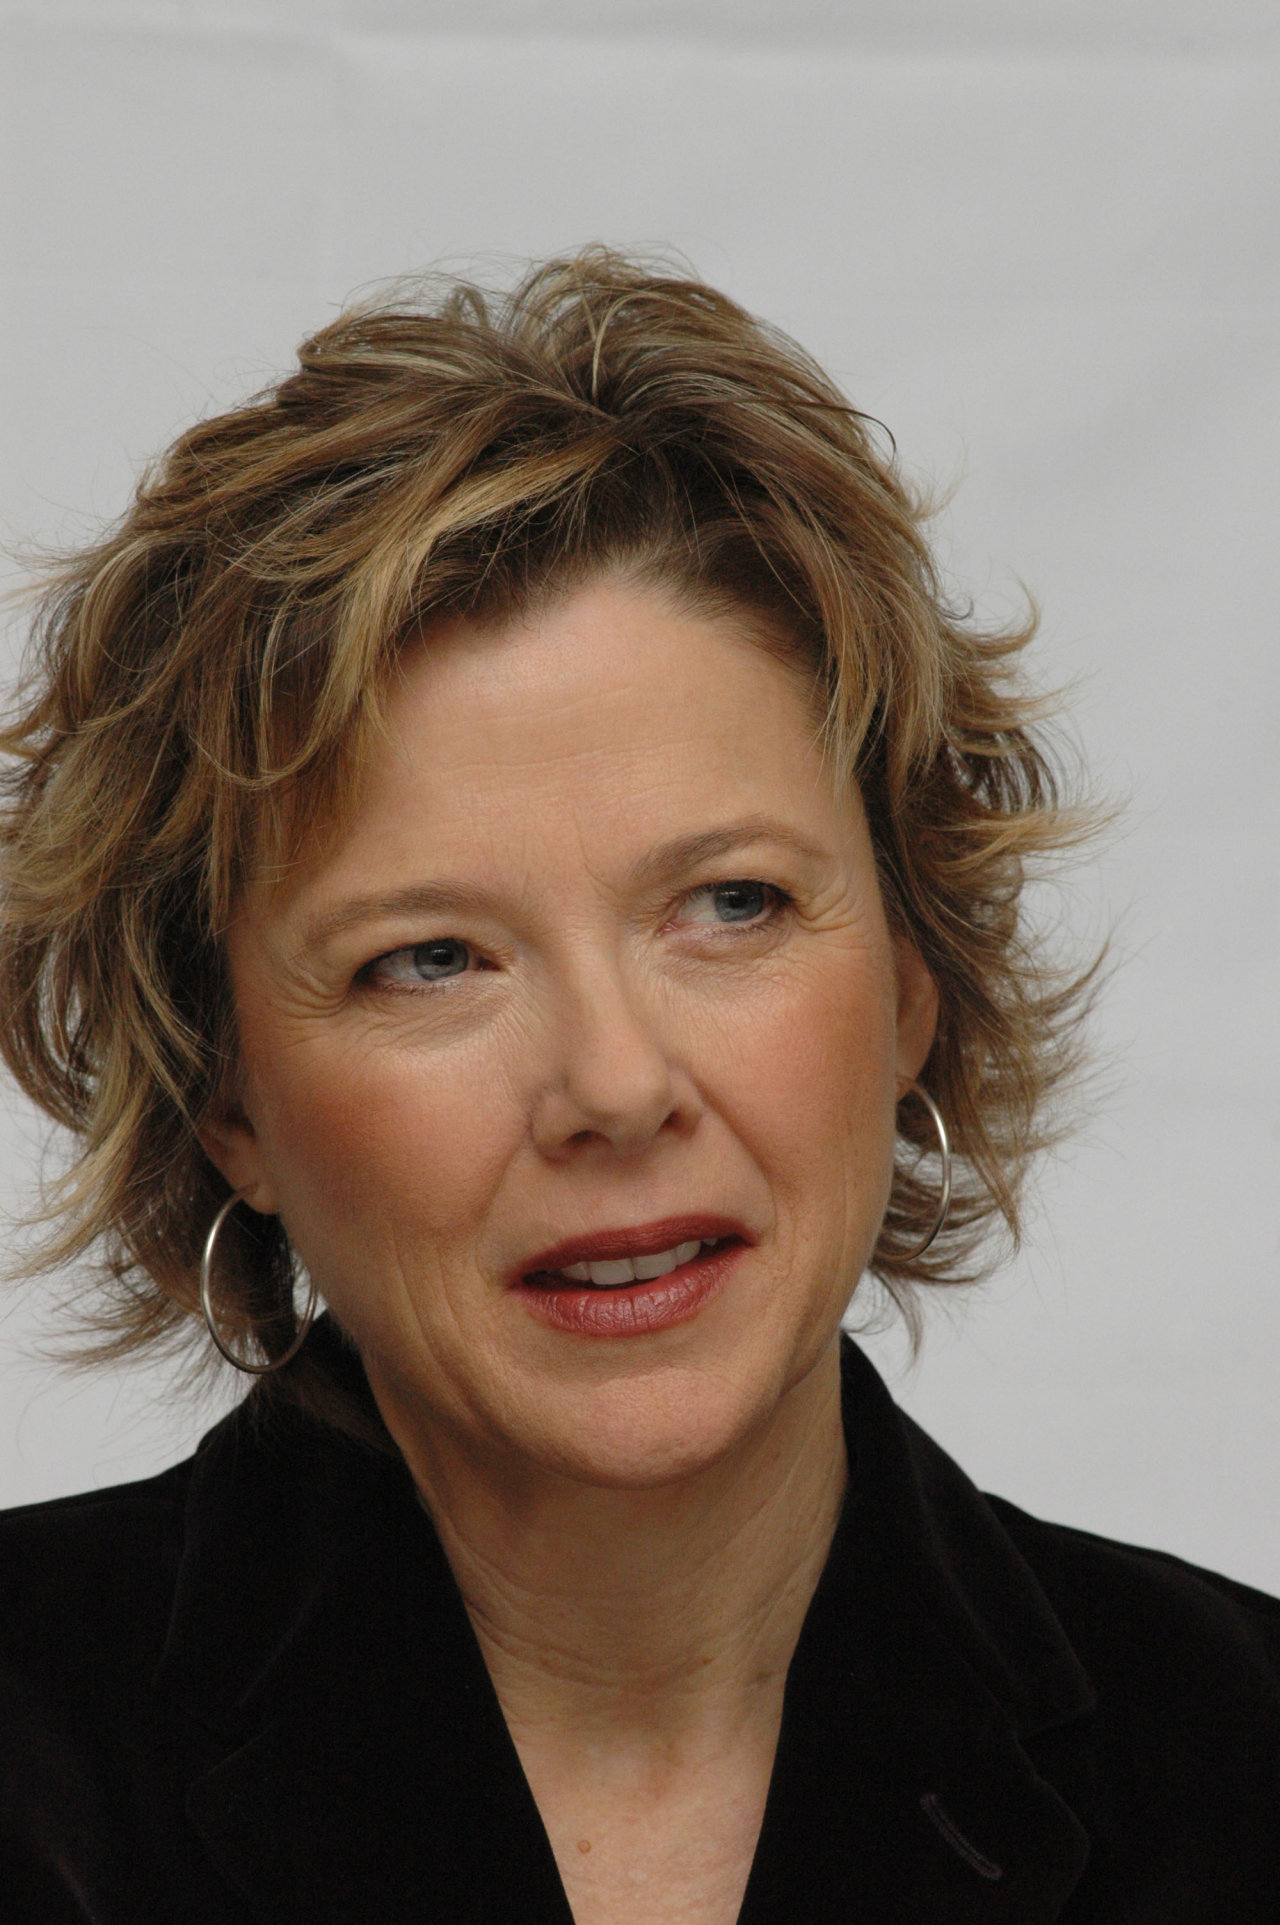 annette bening wallpaper - photo #7